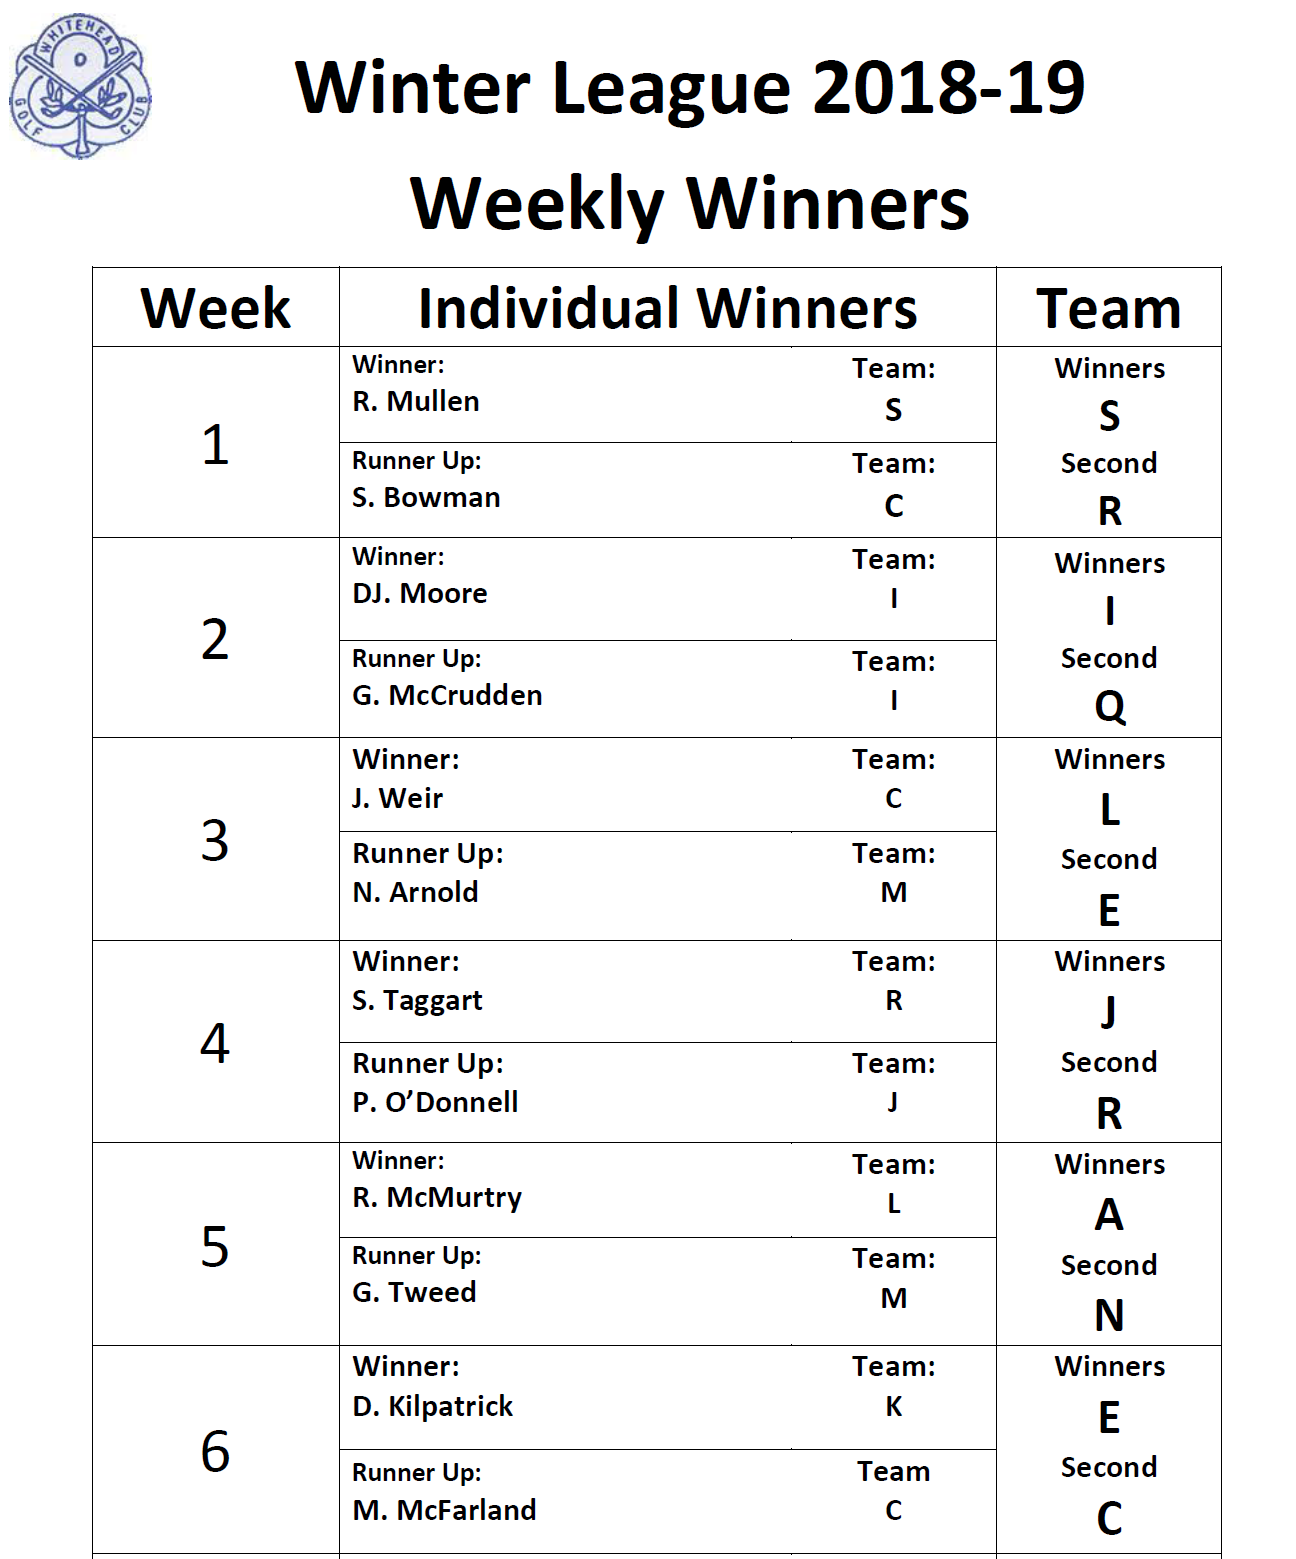 Winter league week 6 weekly winners